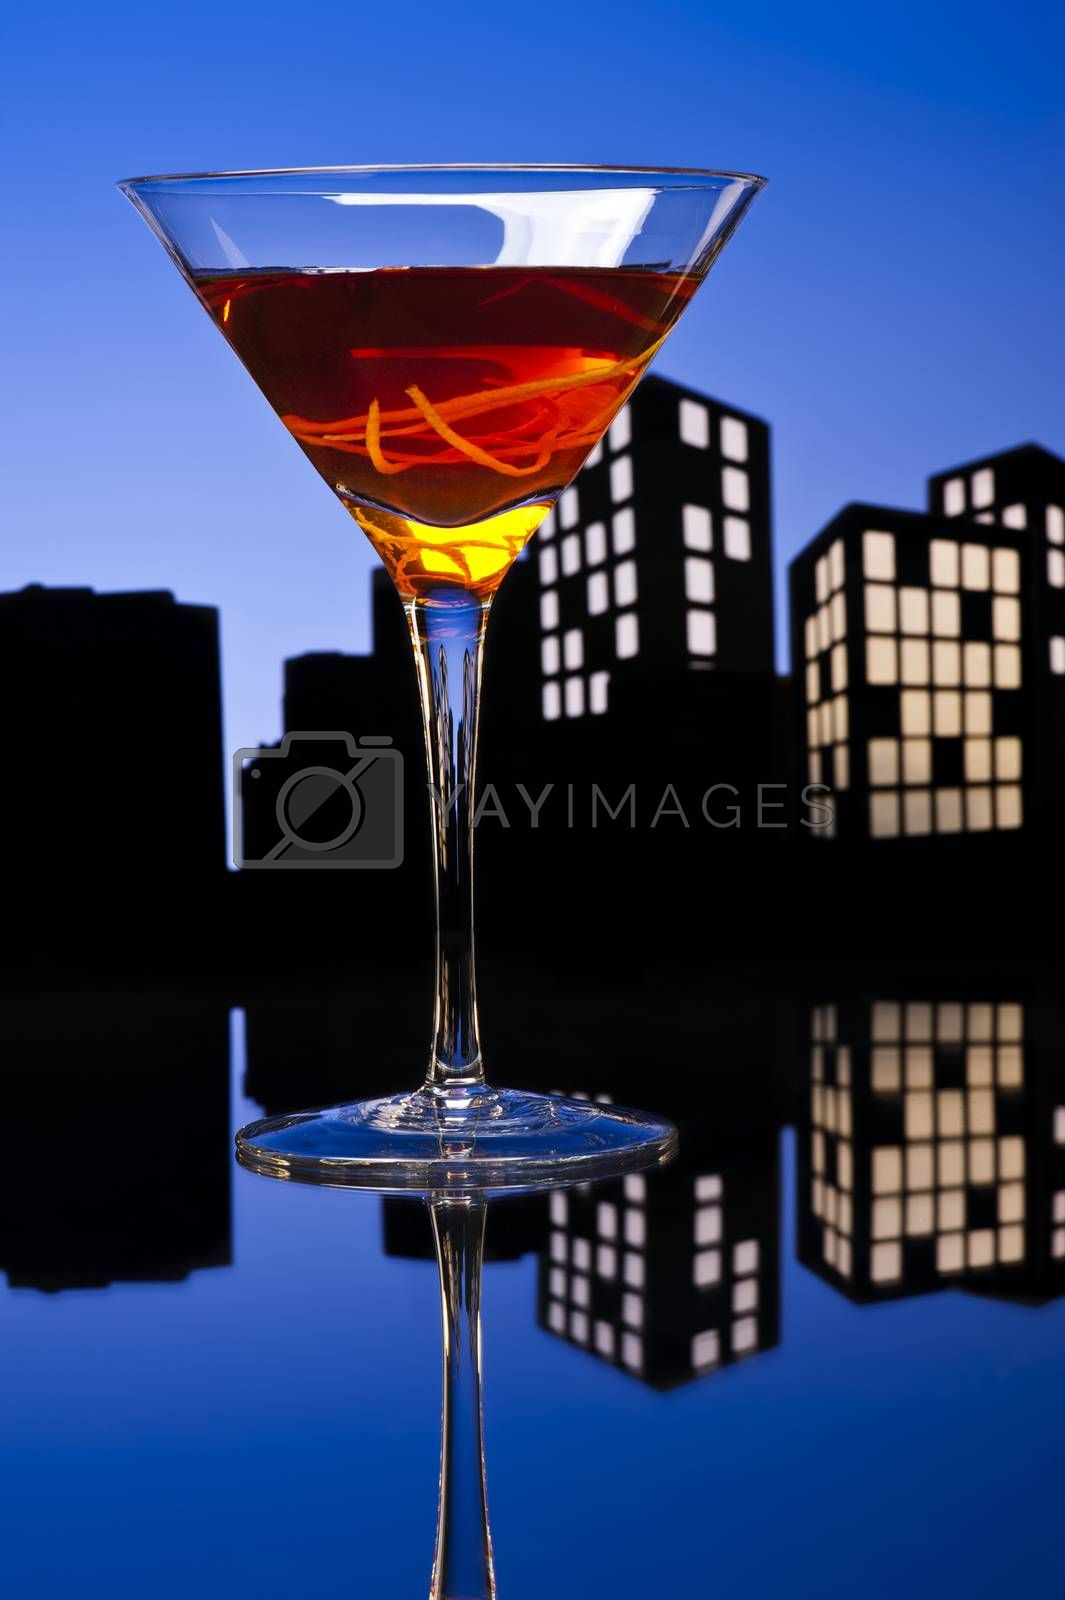 A Manhattan is a cocktail made with whiskey, sweet vermouth, and bitters. Whiskeys used are rye (the traditional choice), Canadian whisky, bourbon, blended whiskey and Tennessee whiskey.